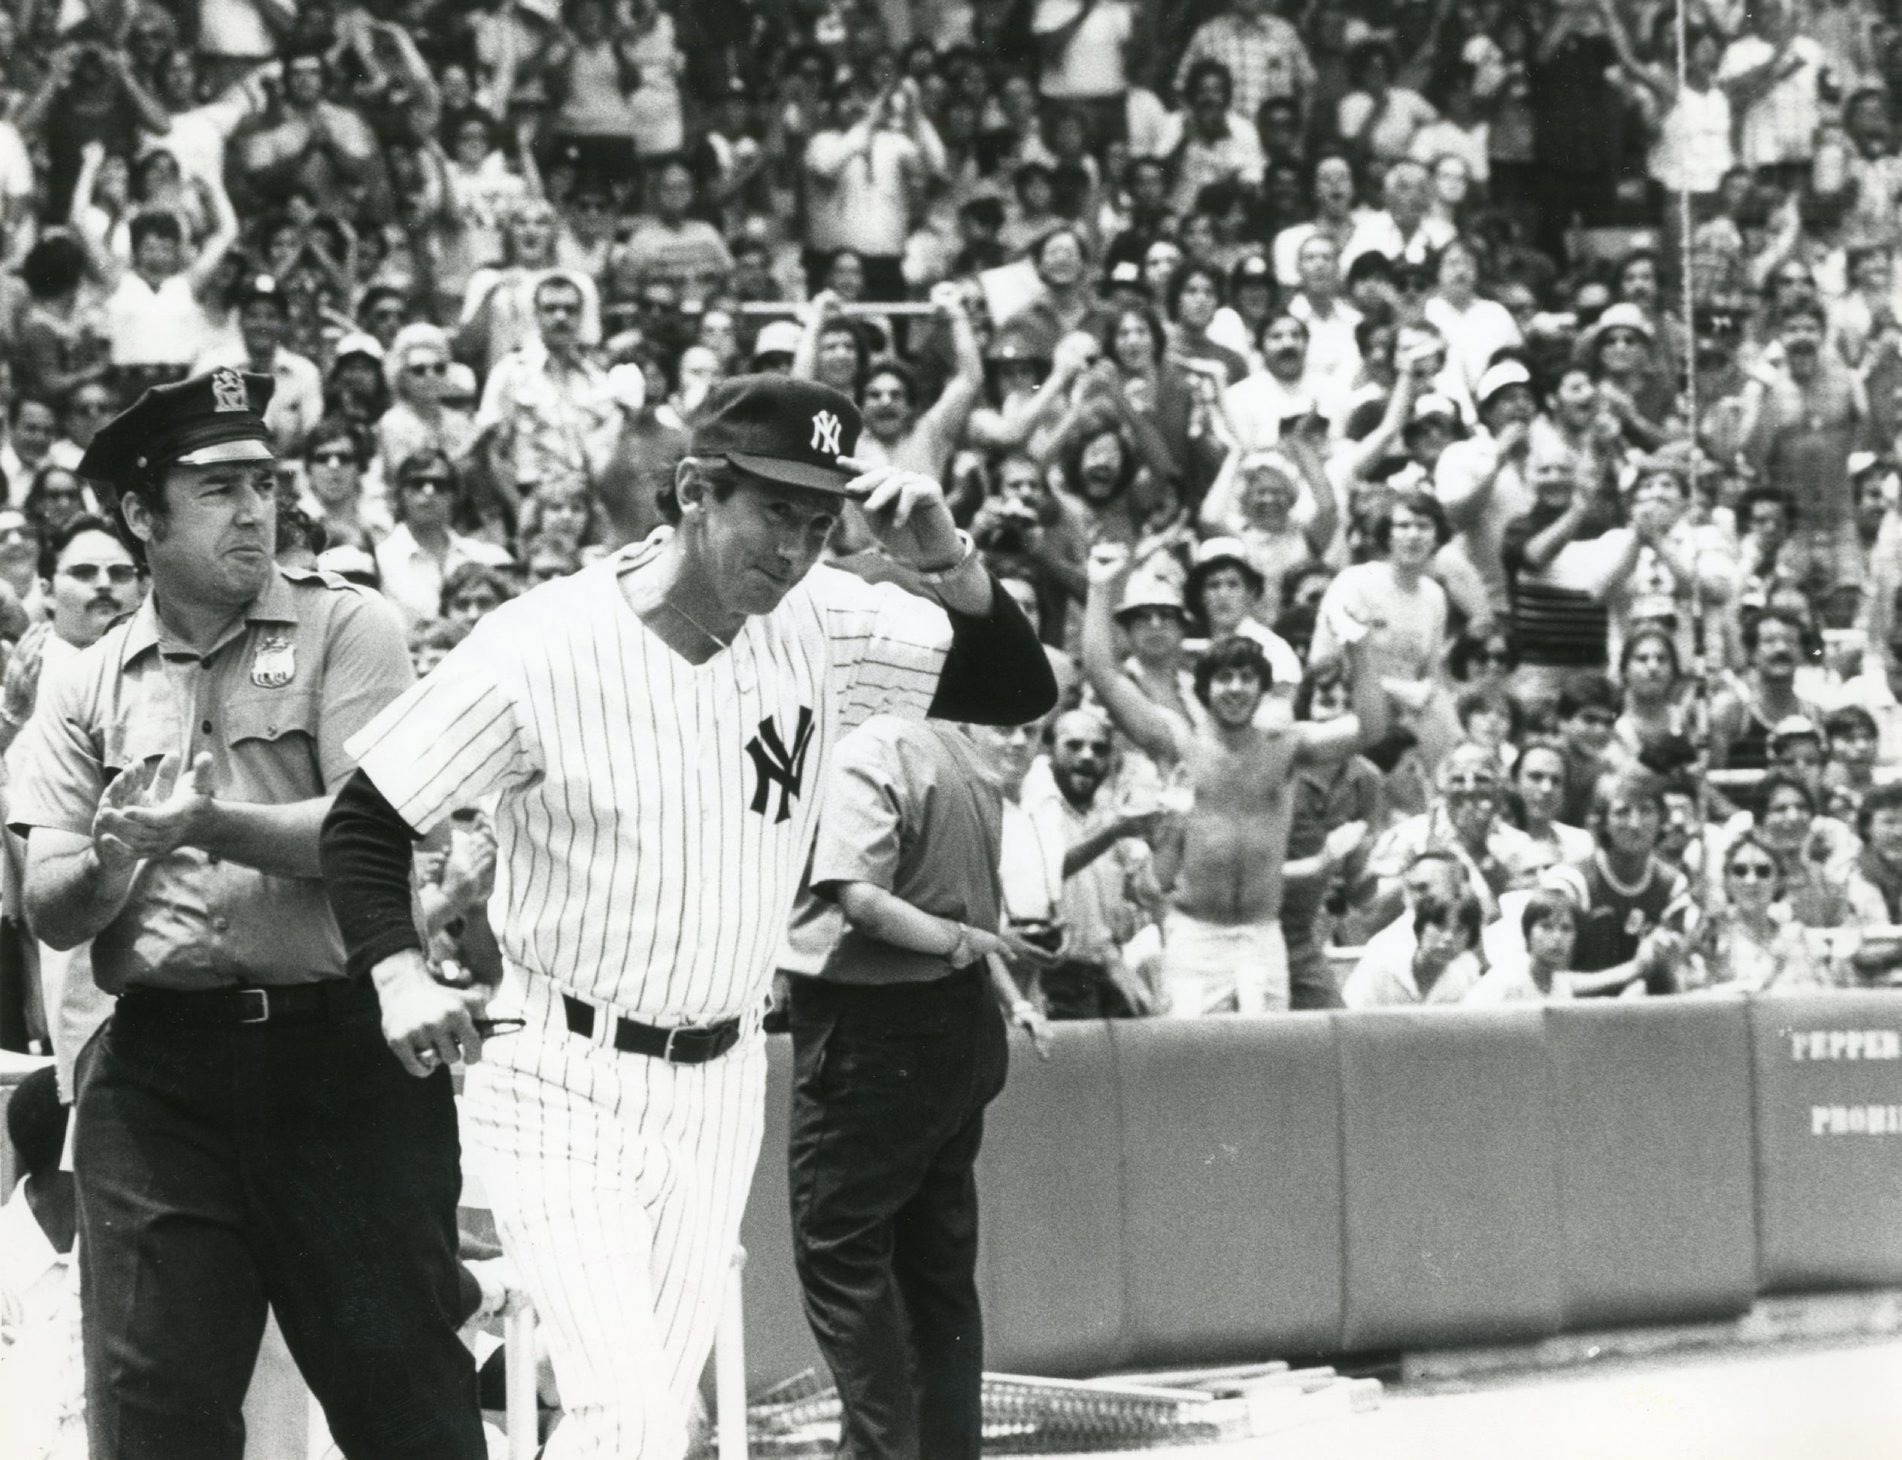 Billy Martin acknowledges fans' cheers as he joins teammates for 1978 Old Timers' Game at Yankee Stadium.